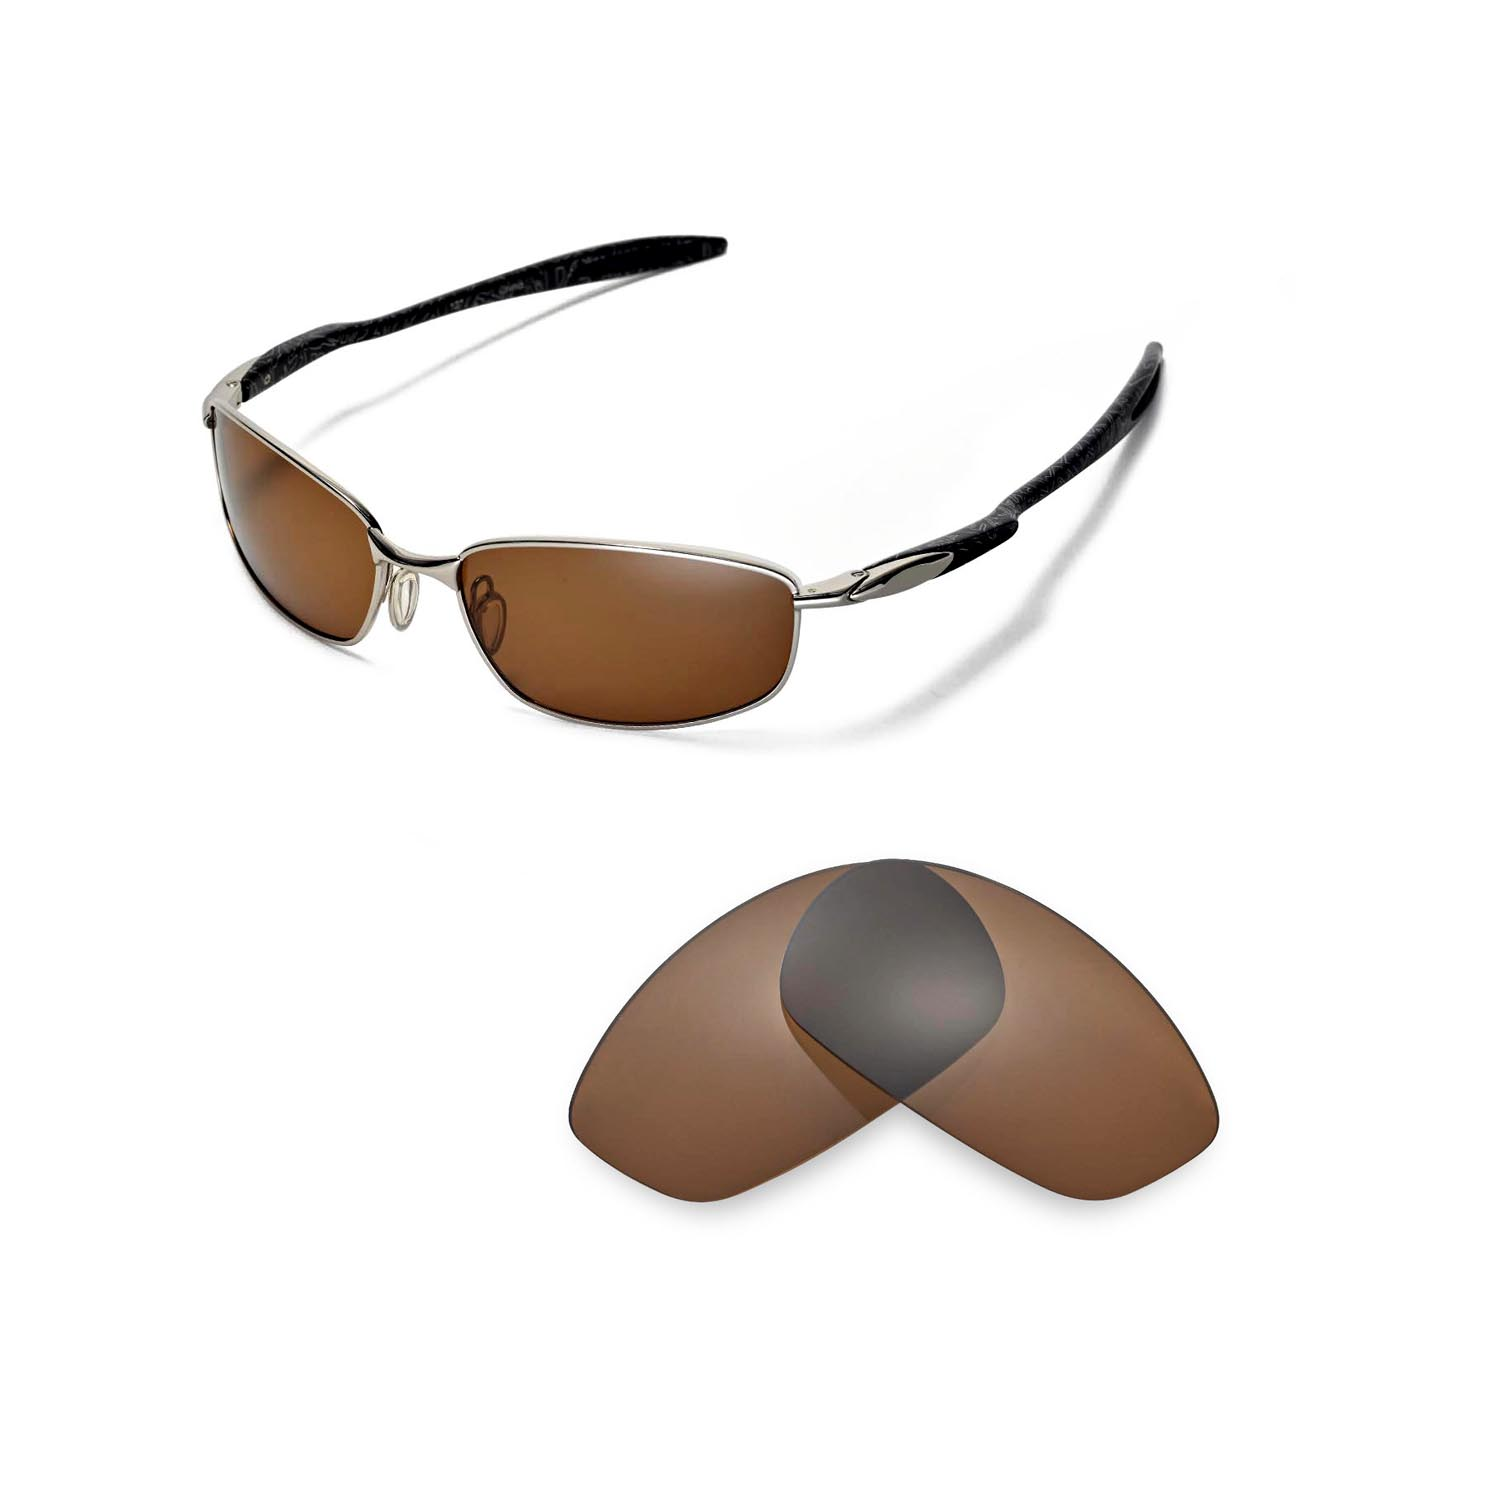 86aeb8d082f Details about Walleva Polarized Brown Replacement Lenses for Oakley Blender  Sunglasses